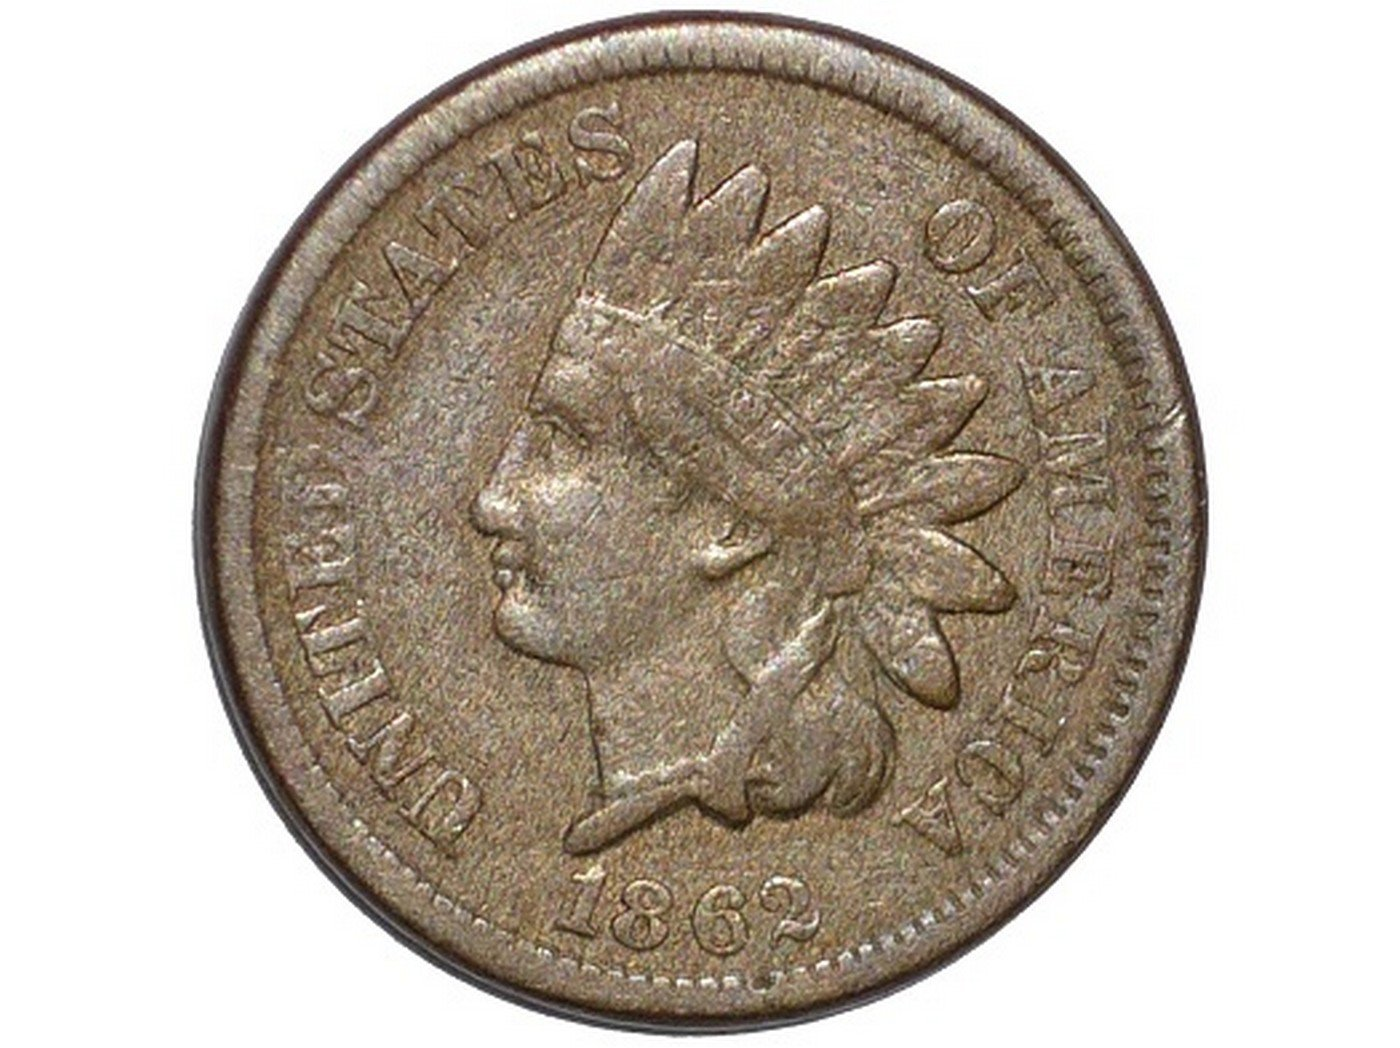 1862 Obverse of CUD-014 - Indian Head Penny - Photo by David Poliquin